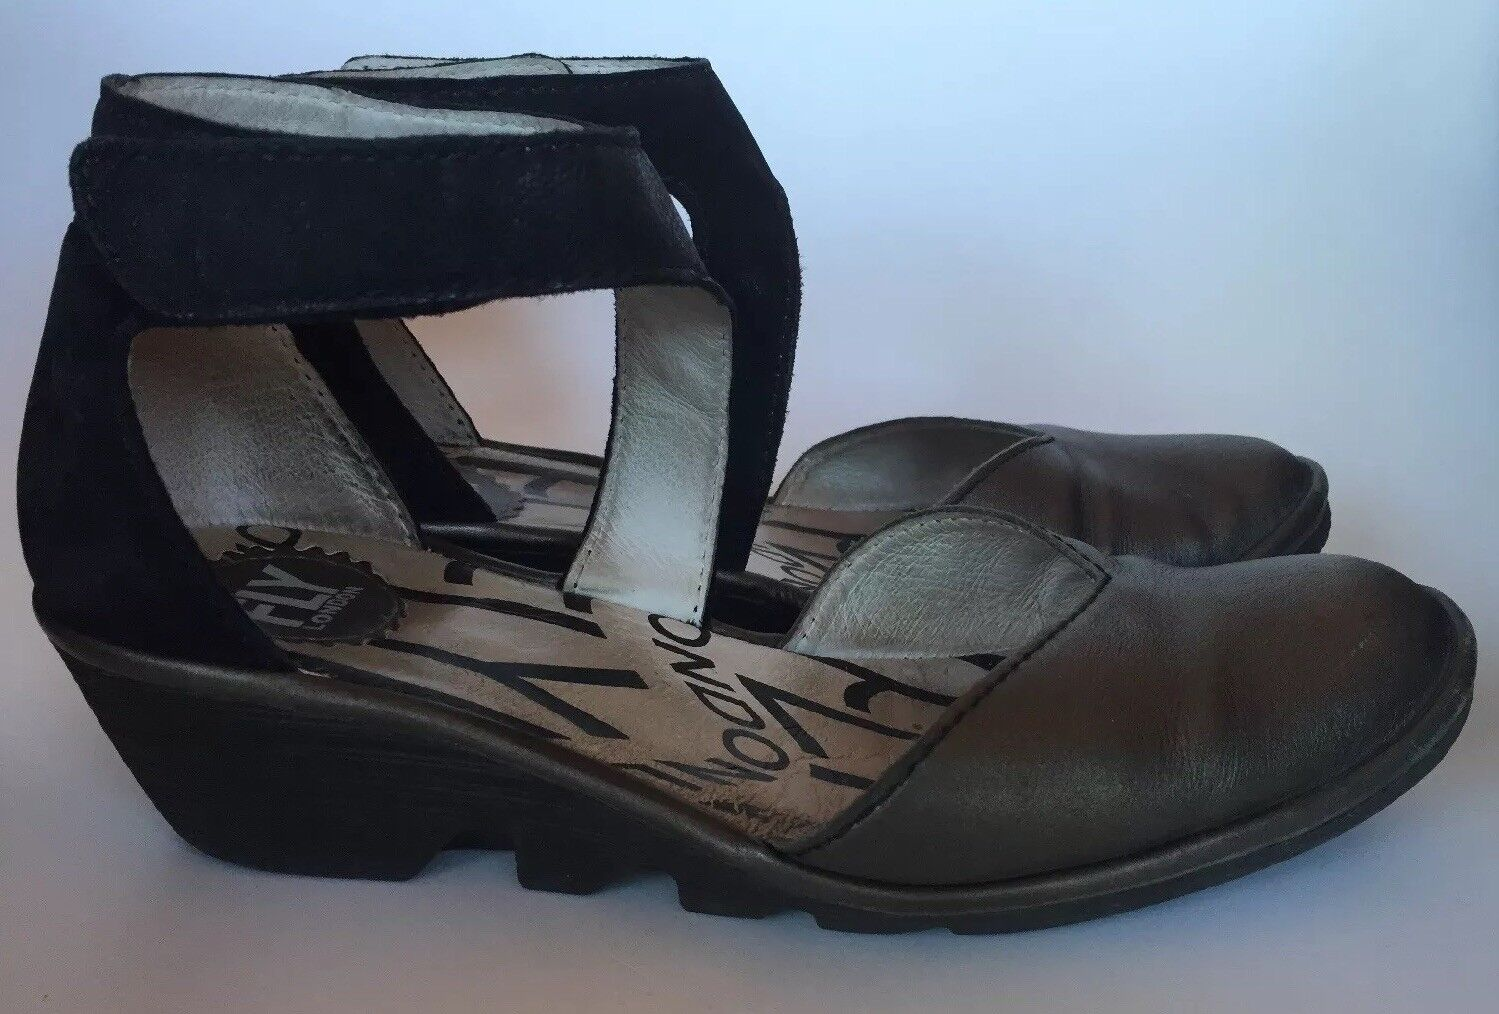 FLY LONDON Piat Black Suede Ankle Strap Low Wedge Mary Jane shoes 38 US Sz 7-7.5